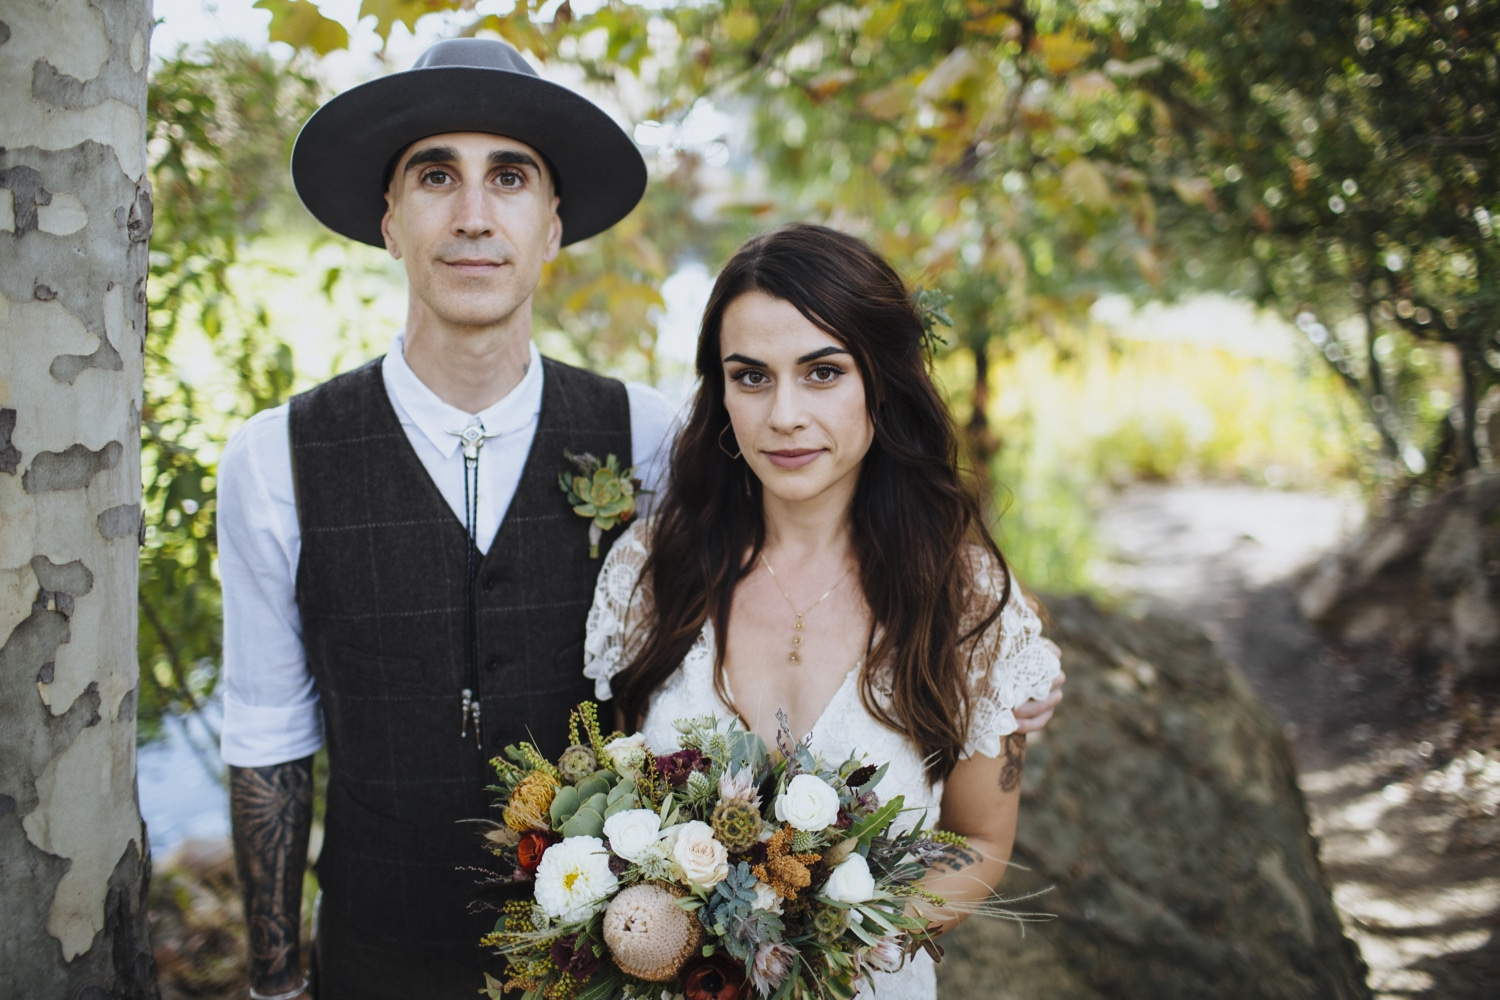 A-Wright-Ranch-Malibu-wedding-organic-catering-eco-caters-amazing-cool-hipster-7-of-18 catering san diego wedding catering